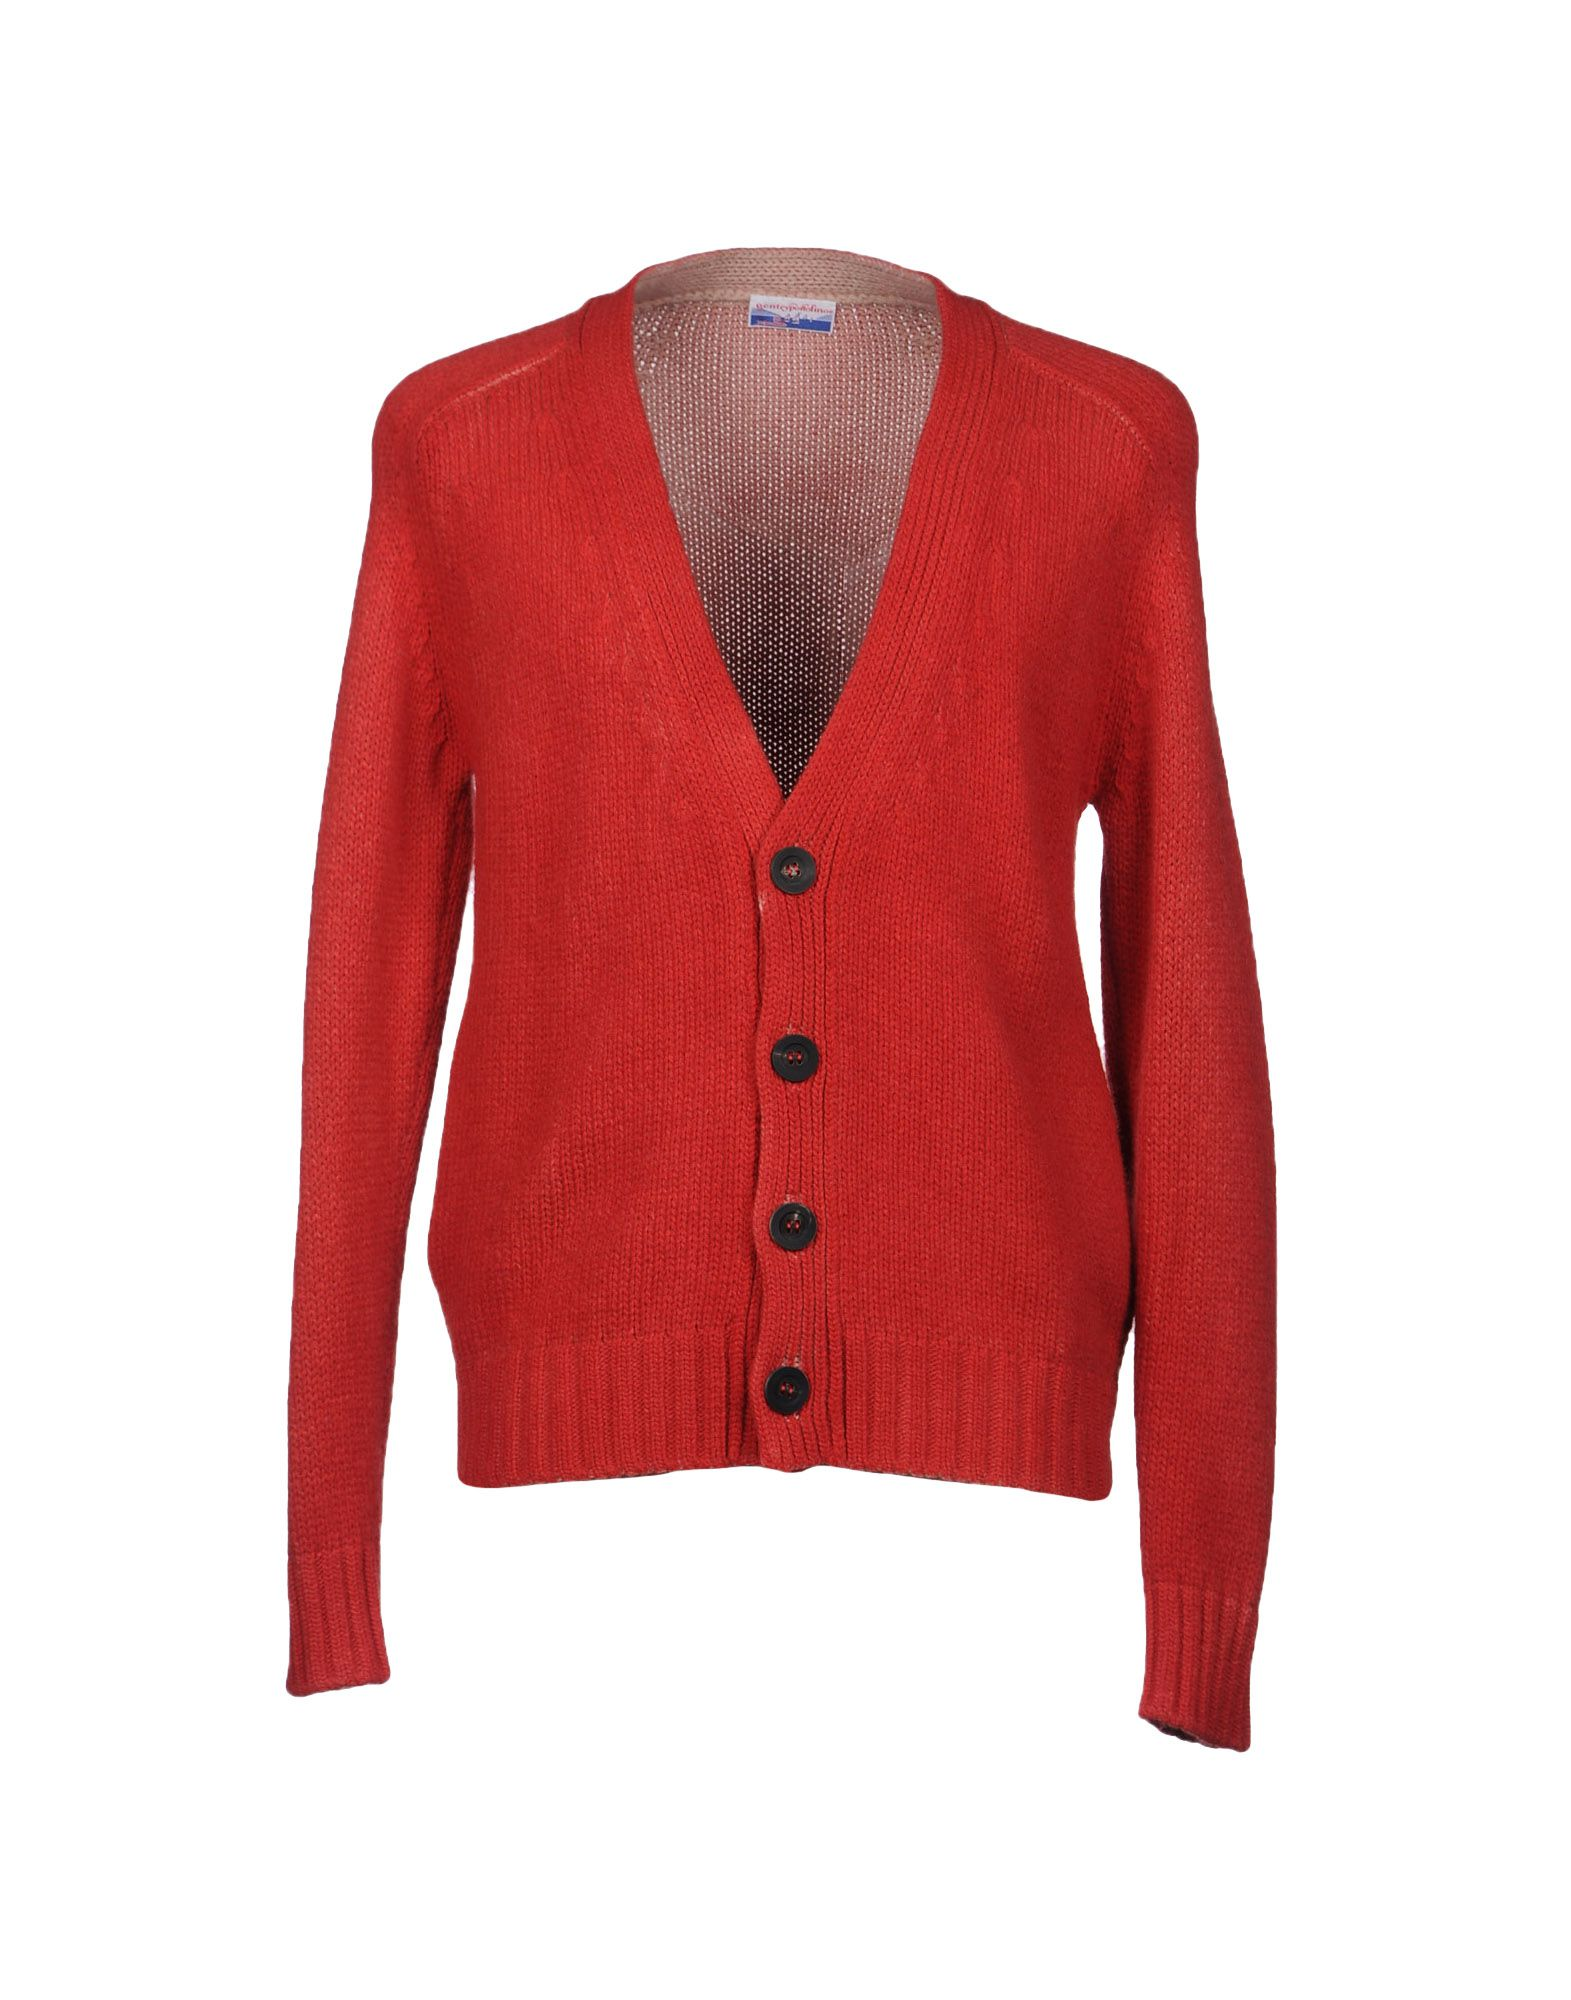 Sears has men's sweaters in a variety of styles. Look great and stay warm with men's cardigans and other fashionable designs.